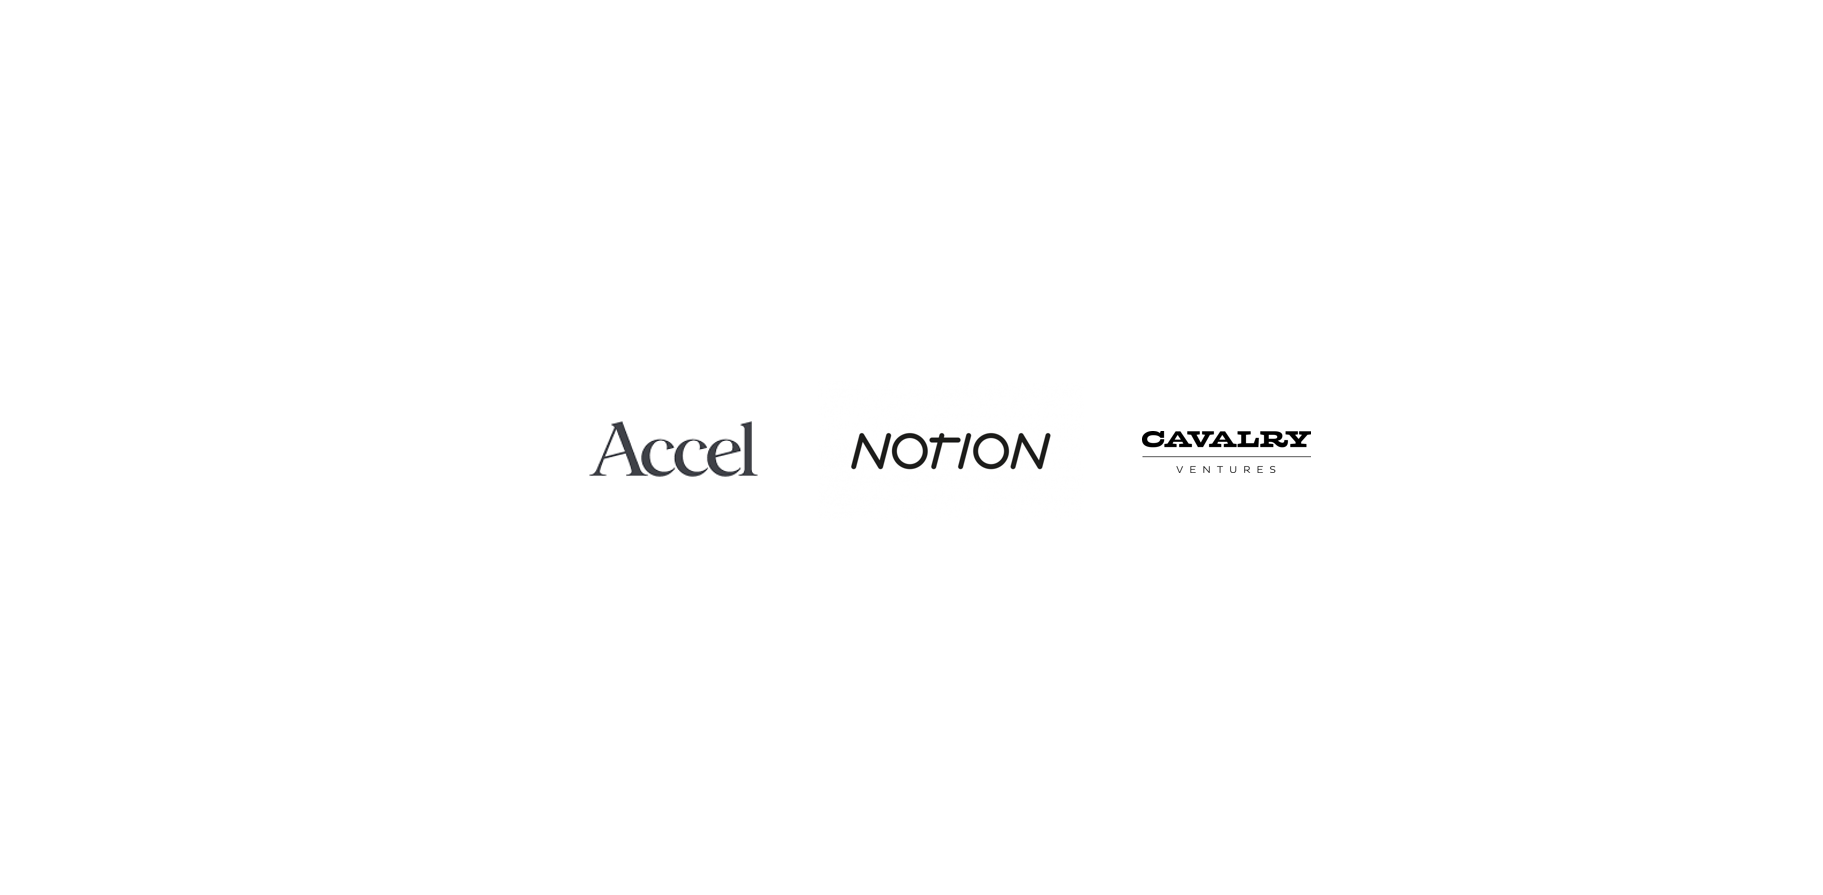 Announcing a $6M investment from Accel and Notion to power no-code automation